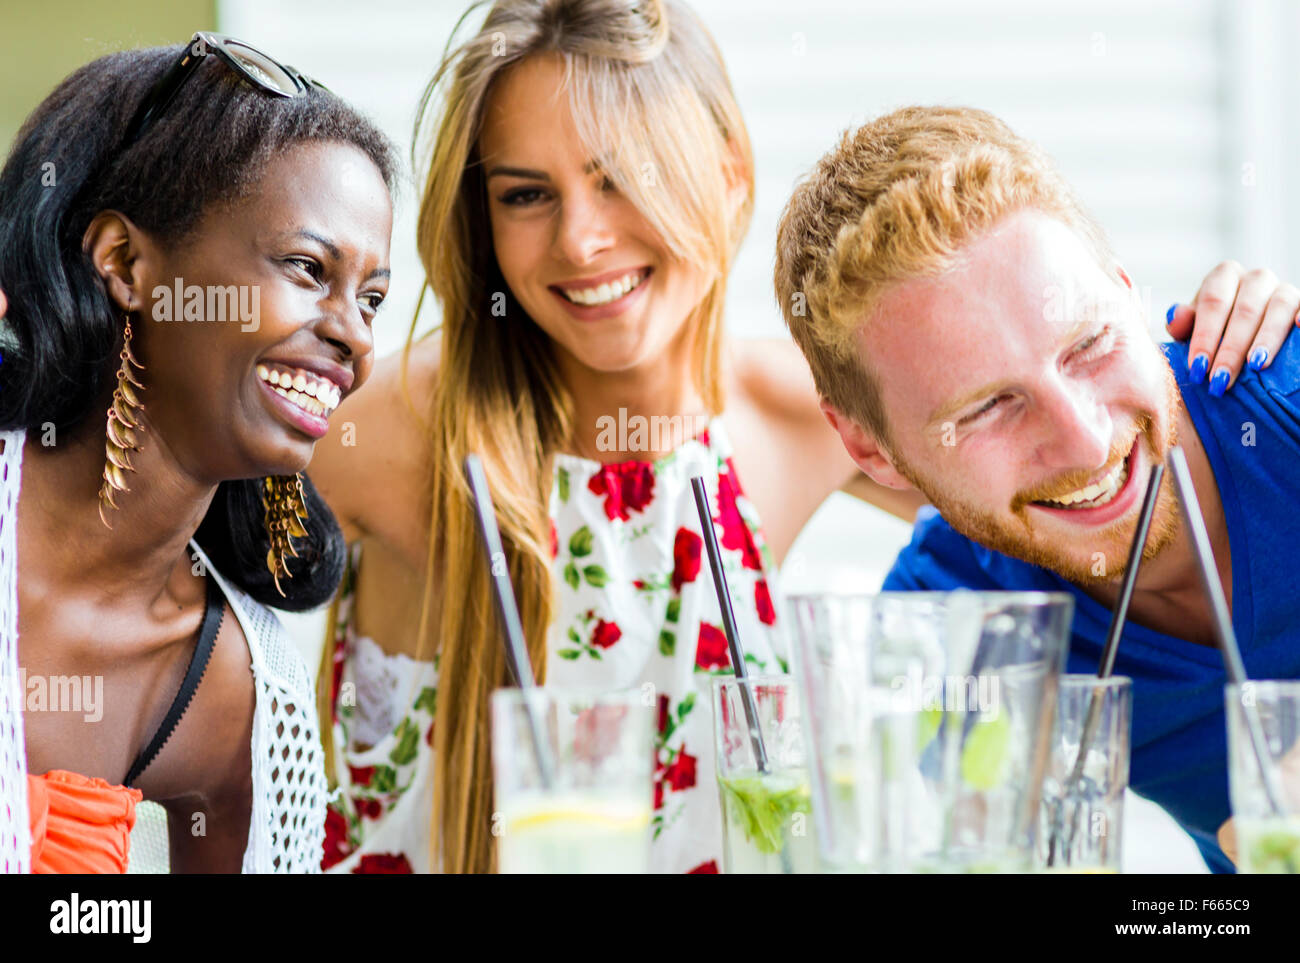 Friends laughing and hugging each other outdoors and being happy - Stock Image